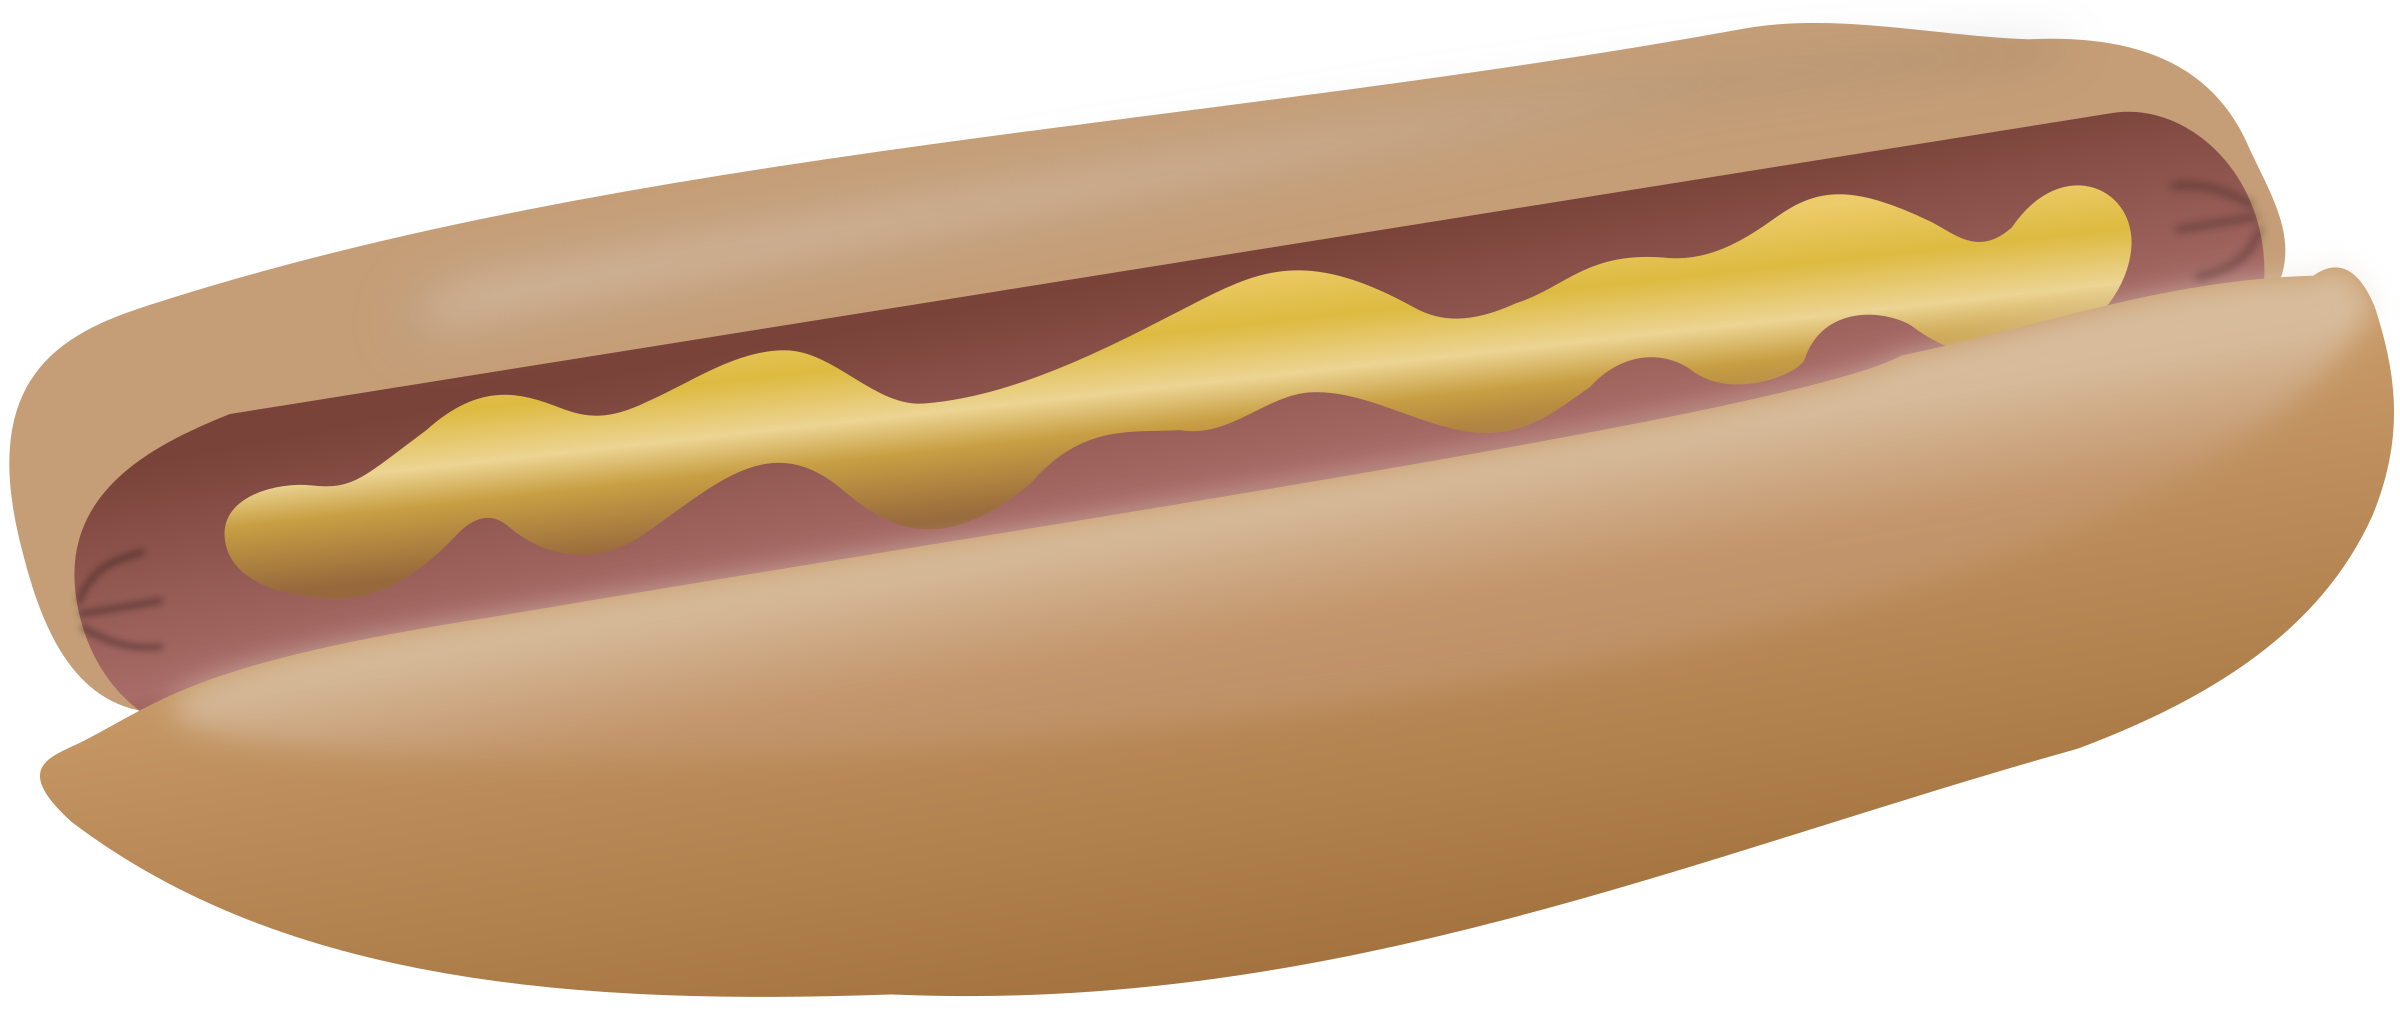 Hot dog with mustard by cwt